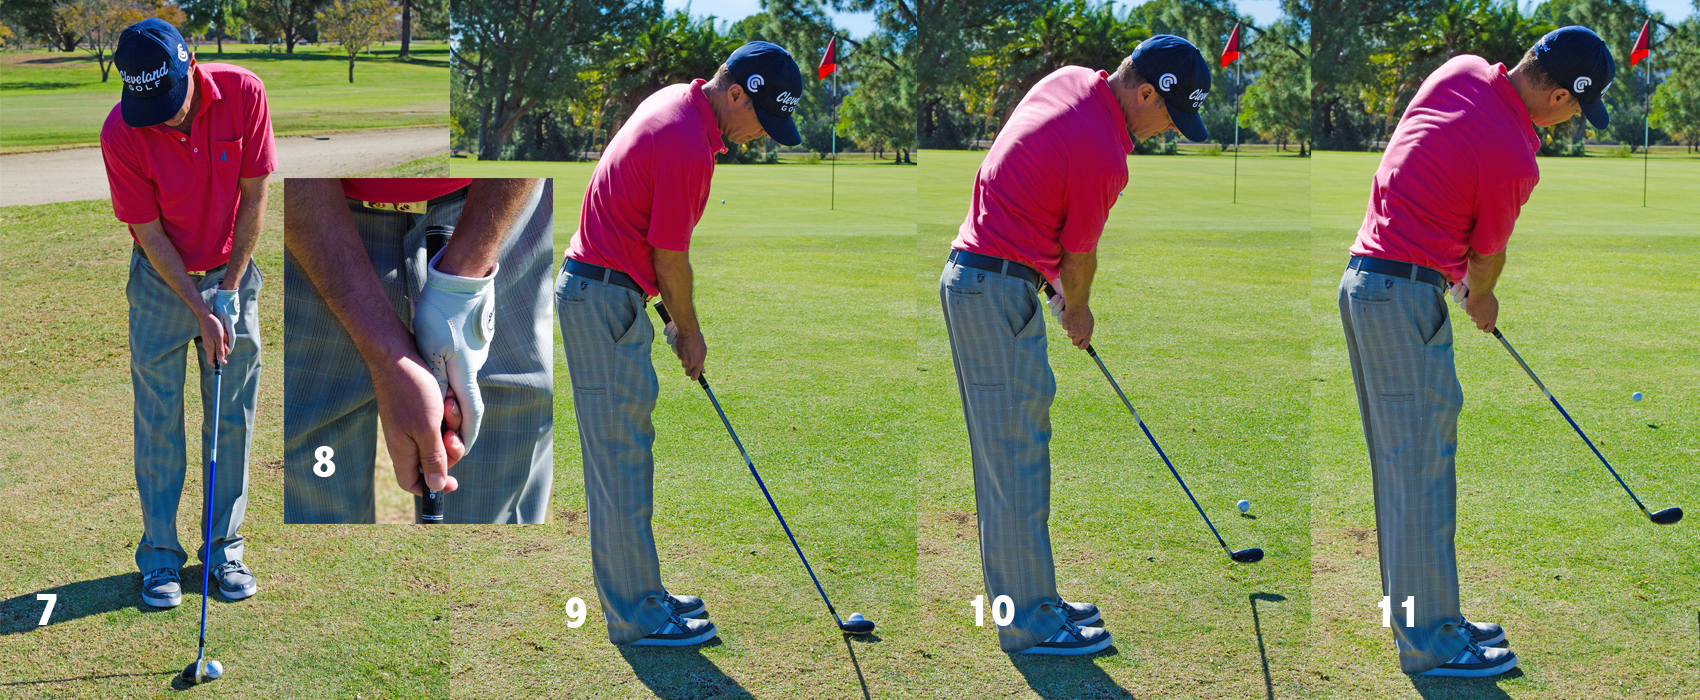 Bobby Hinds Hybrid Chipping